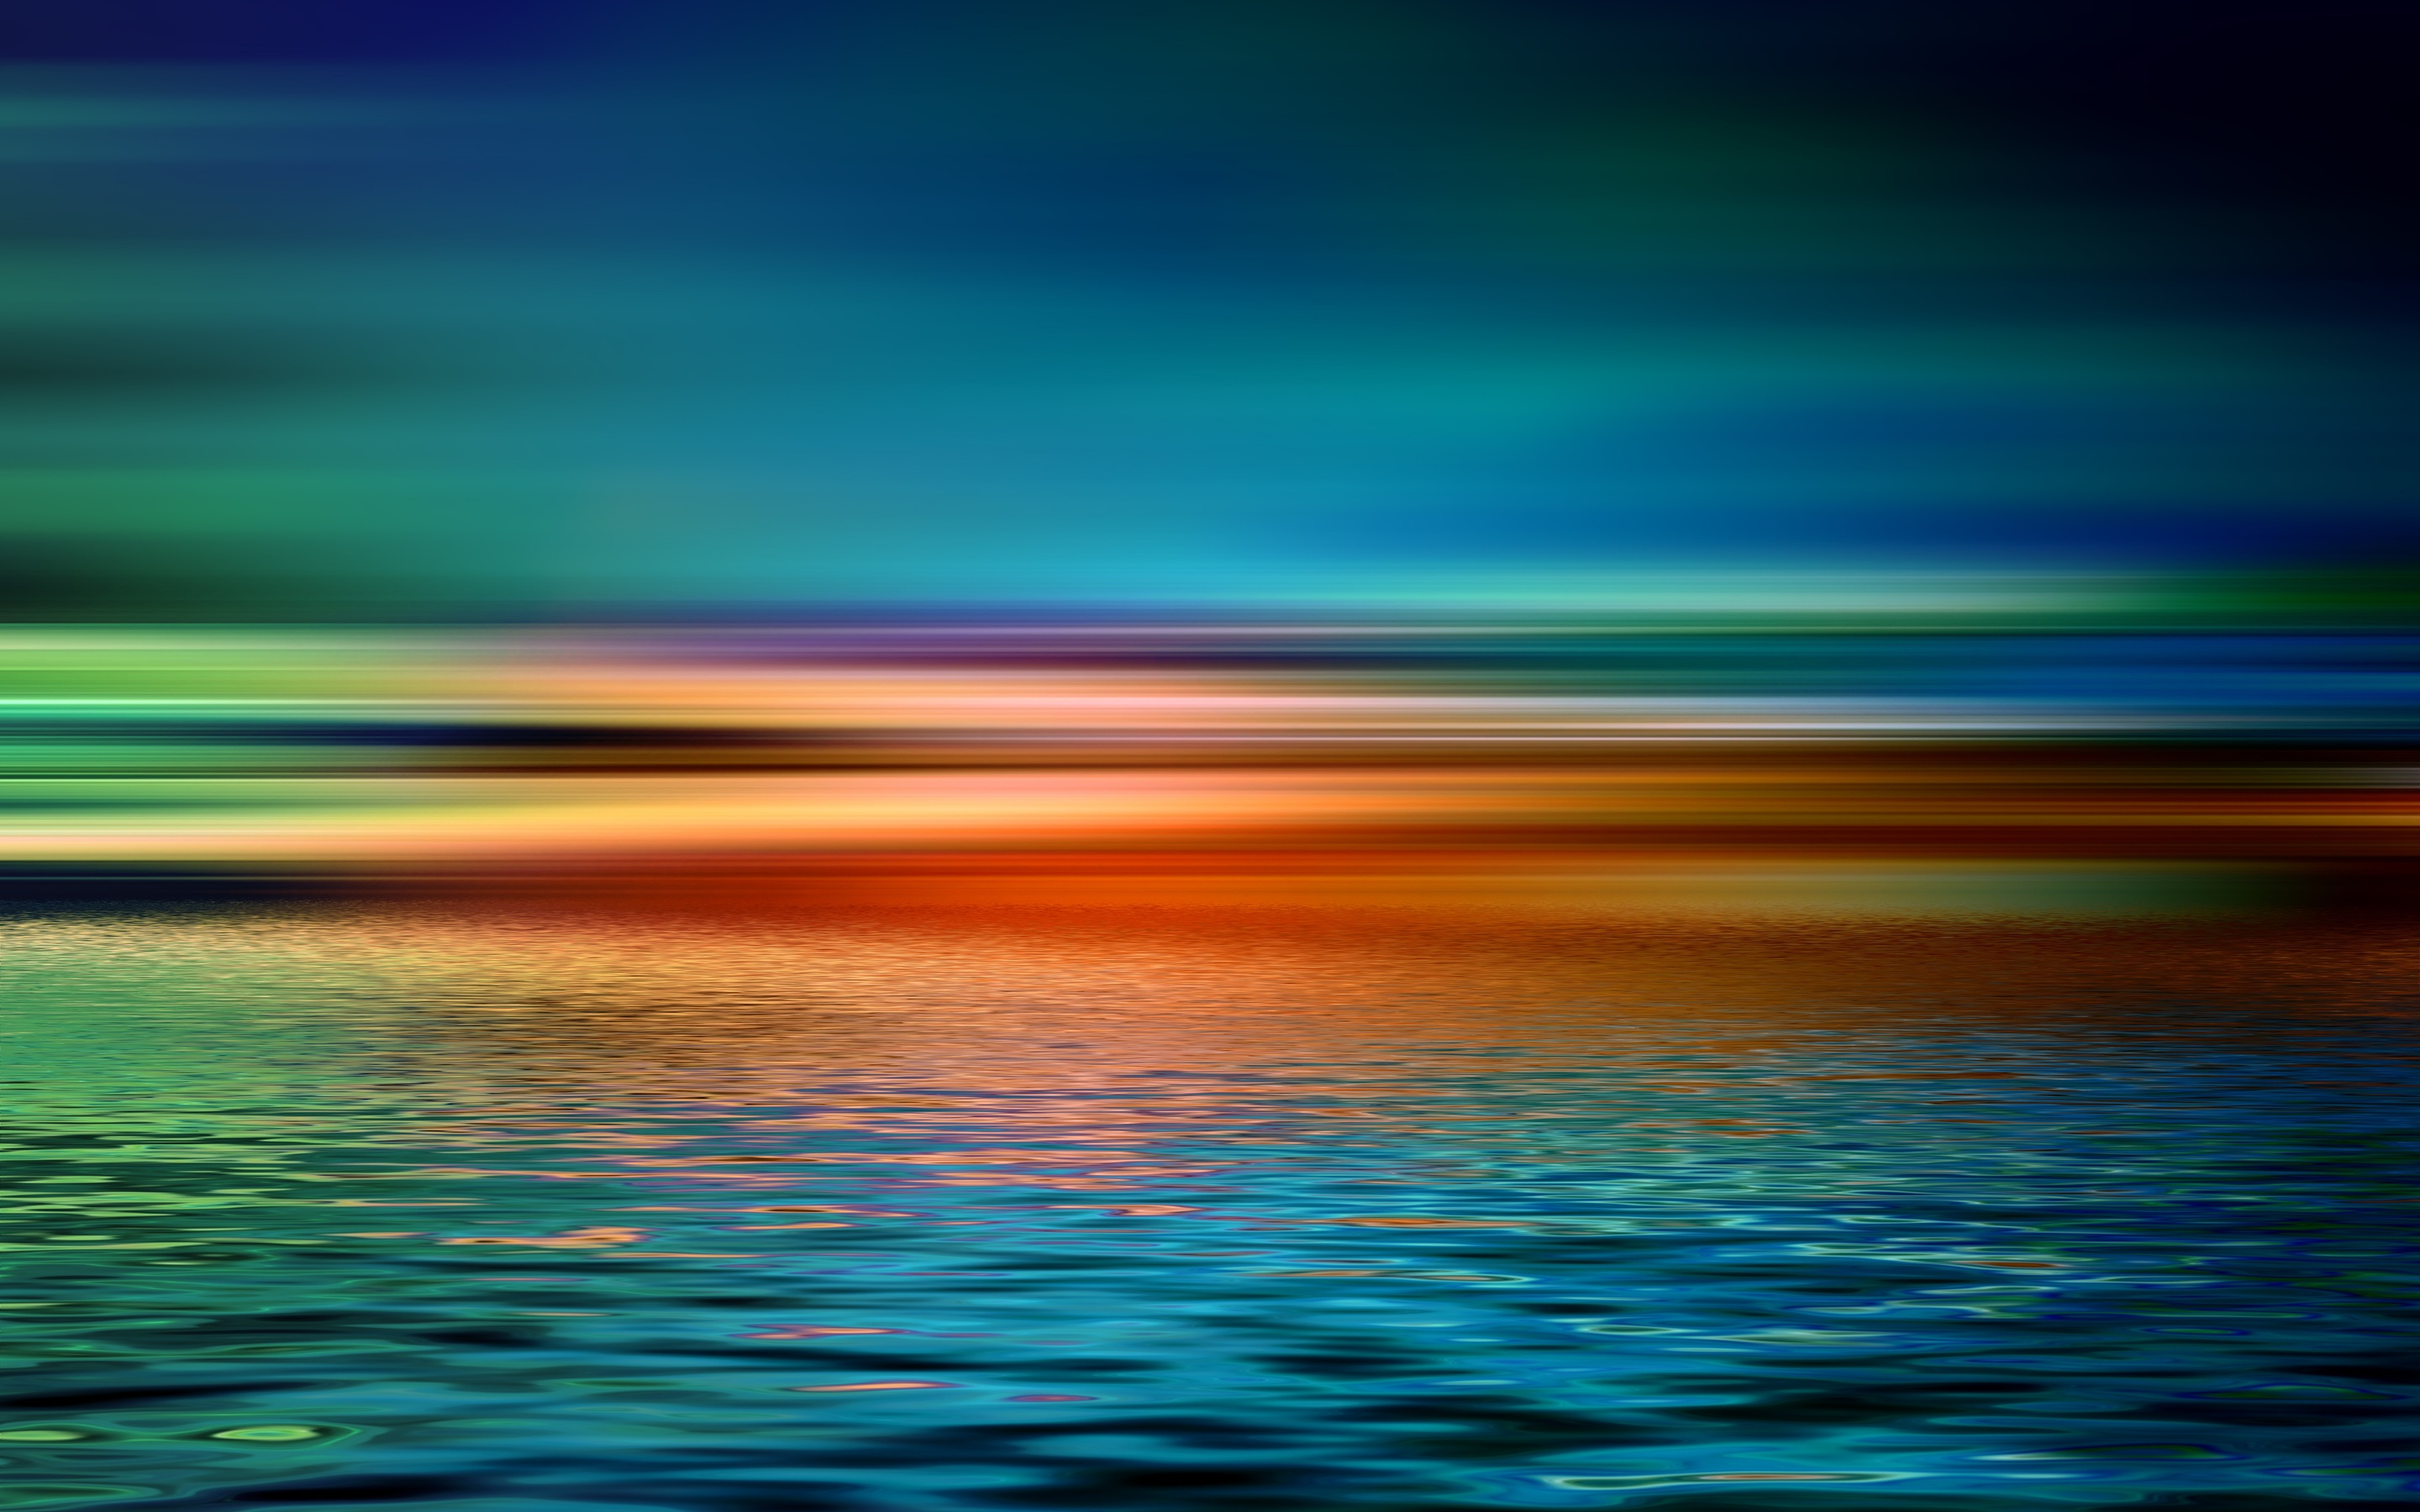 2880x1800 Colorful Artistic Sunset Over Water Macbook Pro